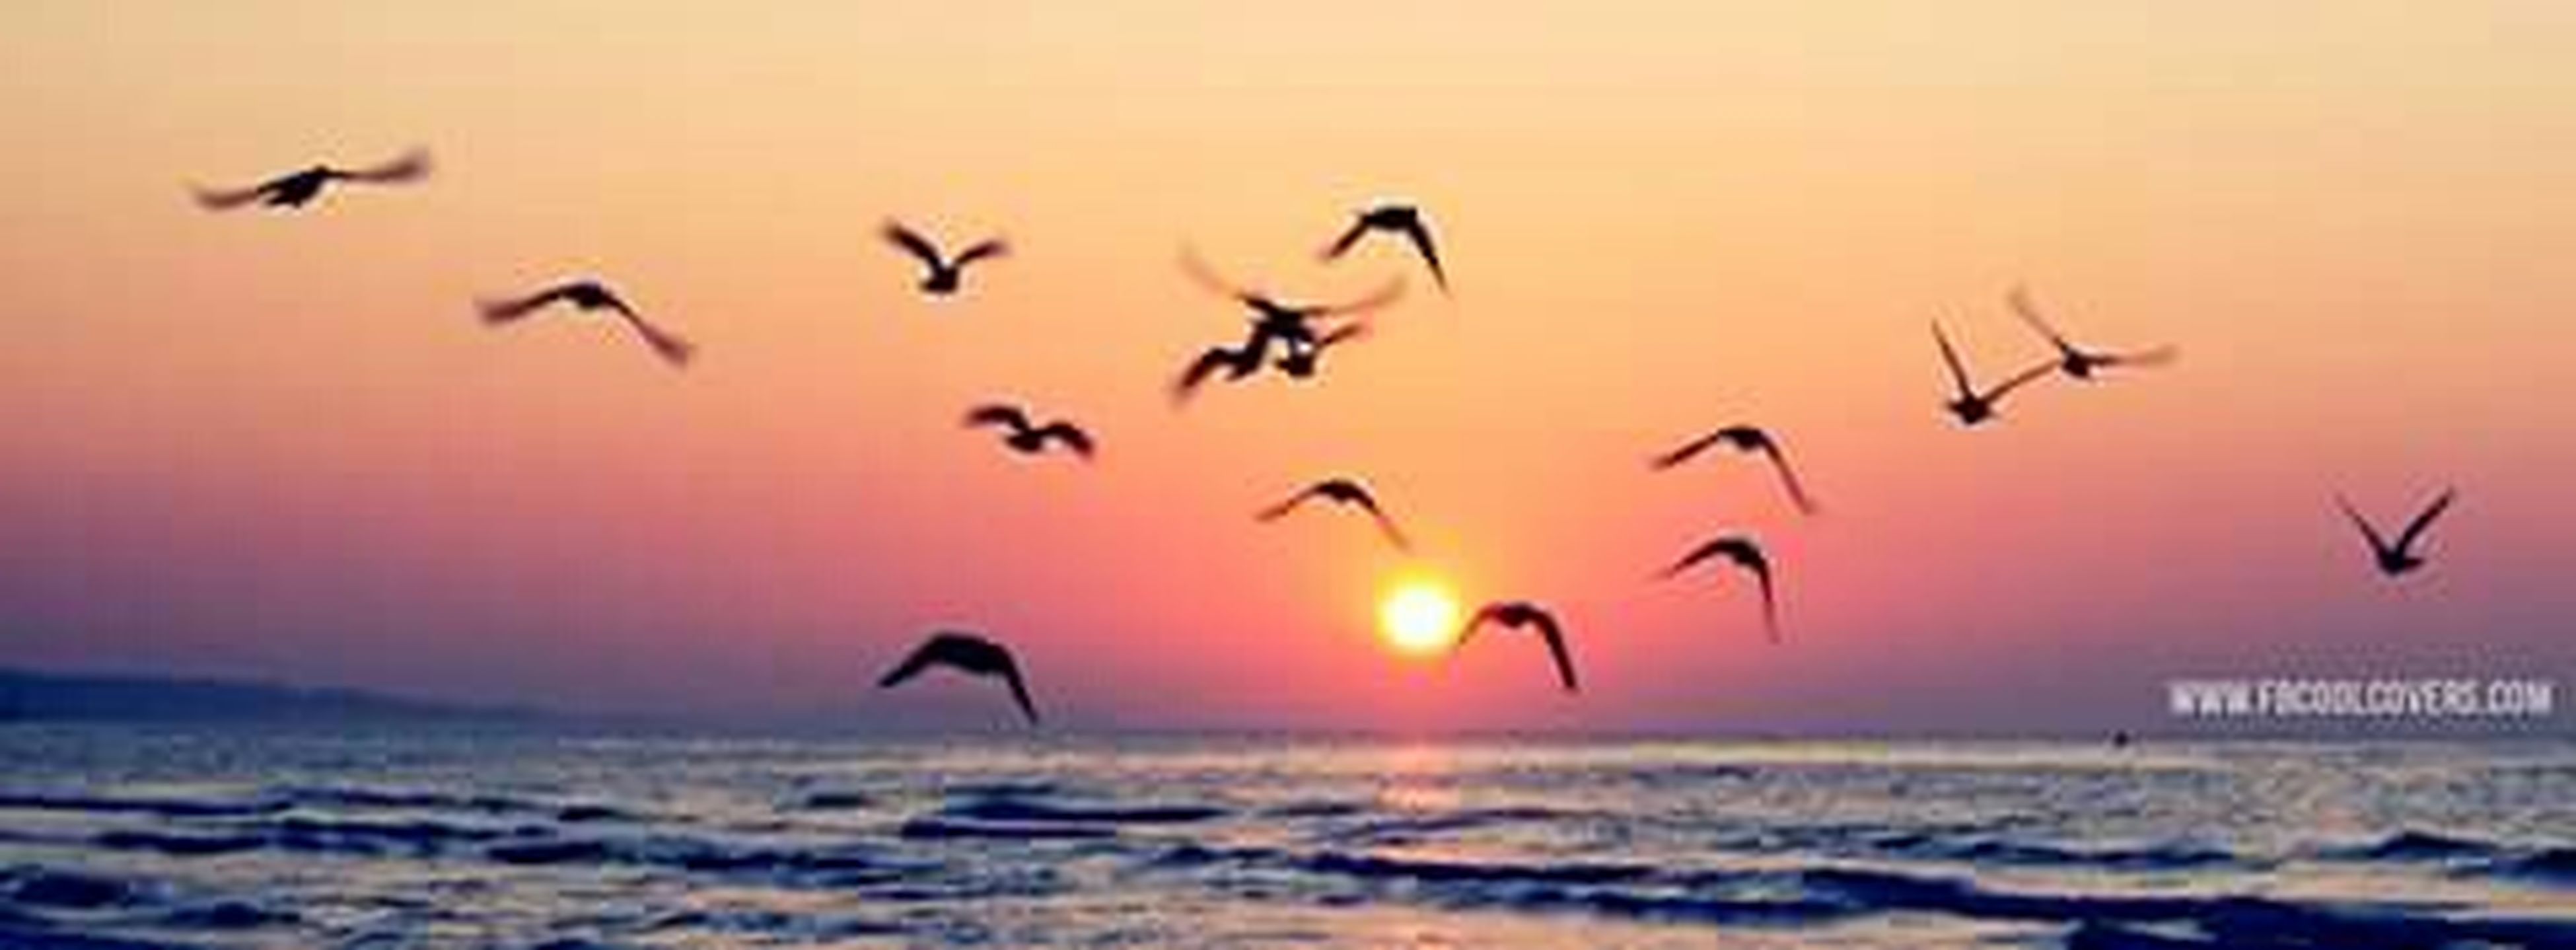 flying, bird, sunset, animal themes, orange color, animals in the wild, wildlife, sea, water, mid-air, flock of birds, nature, beauty in nature, beach, sun, scenics, spread wings, sky, seagull